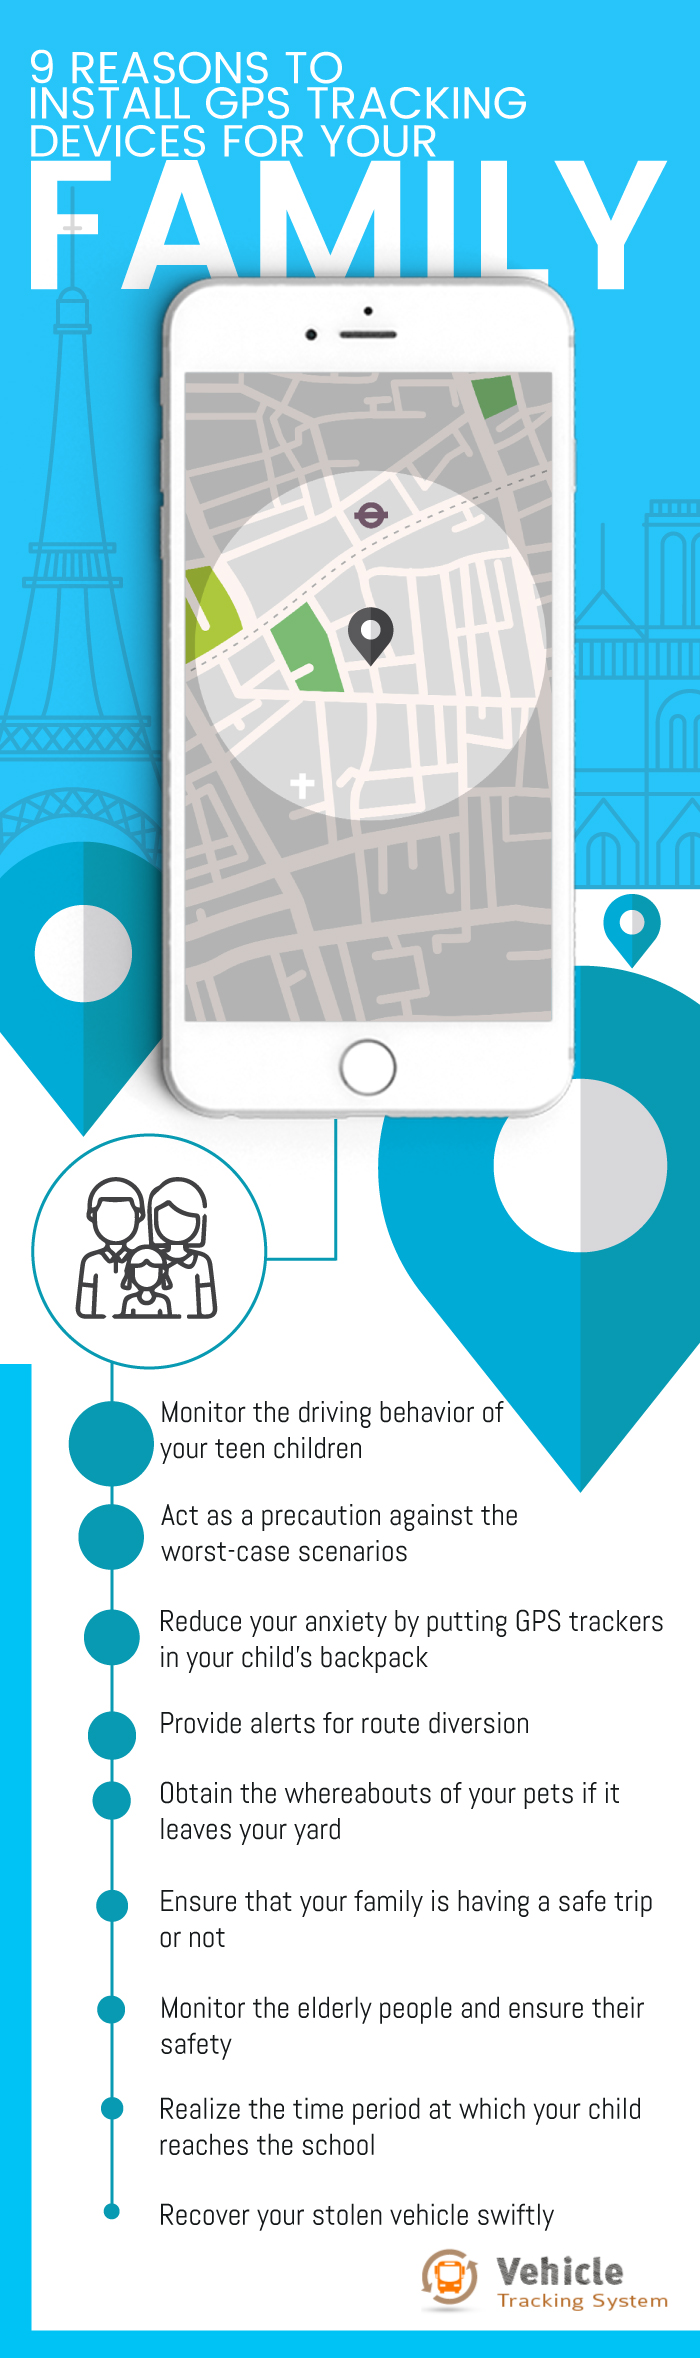 Install GPS tracking devices for your family infographic